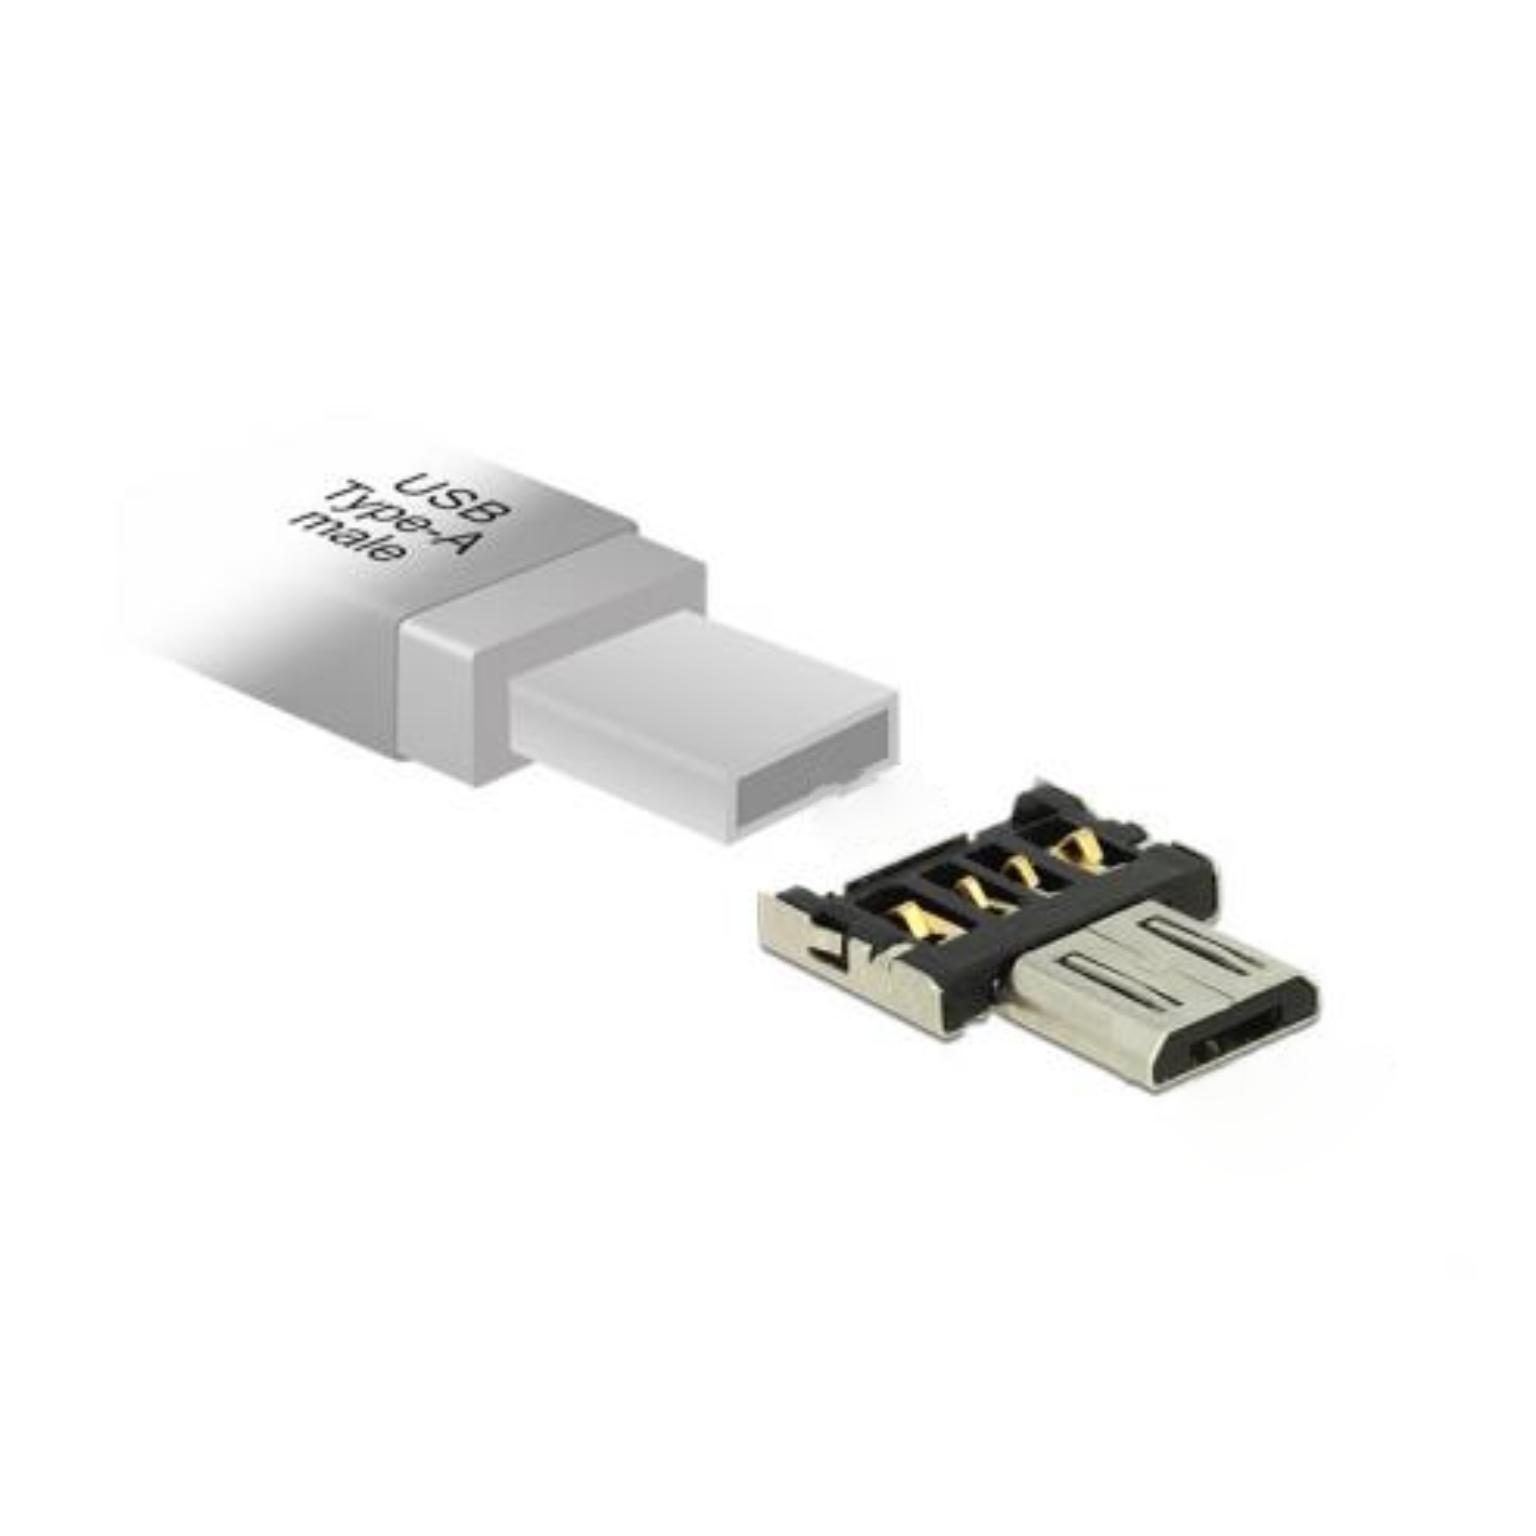 USB 2.0 OTG Adapter Aansluiting 2: USB A Female